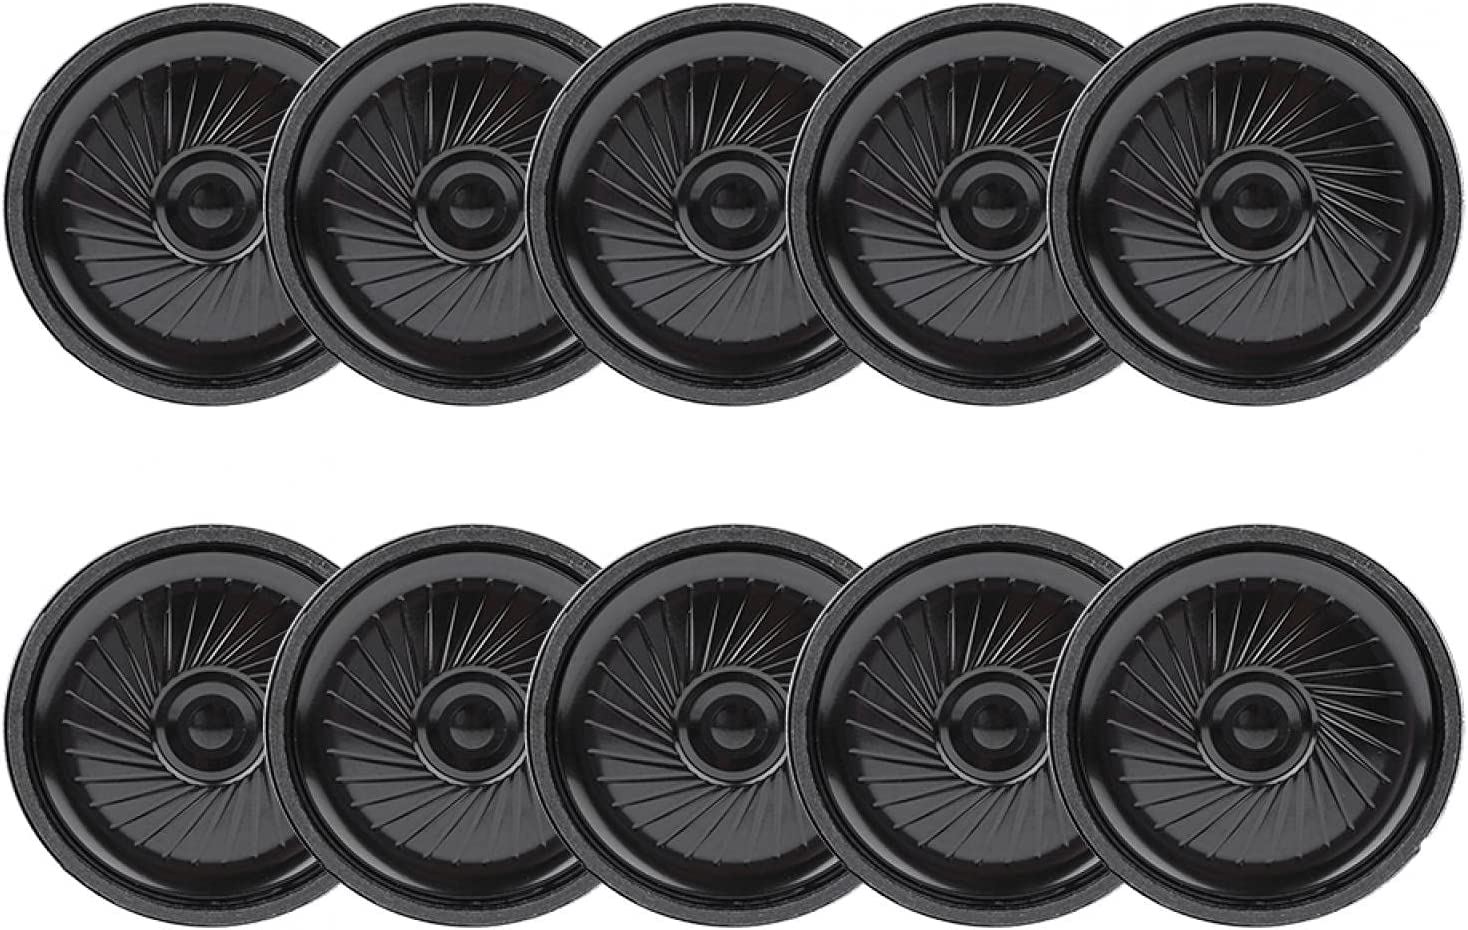 1w Round Water-Proof Audio Speaker High for Max 71% OFF Toy Buil Save money Sensitivity